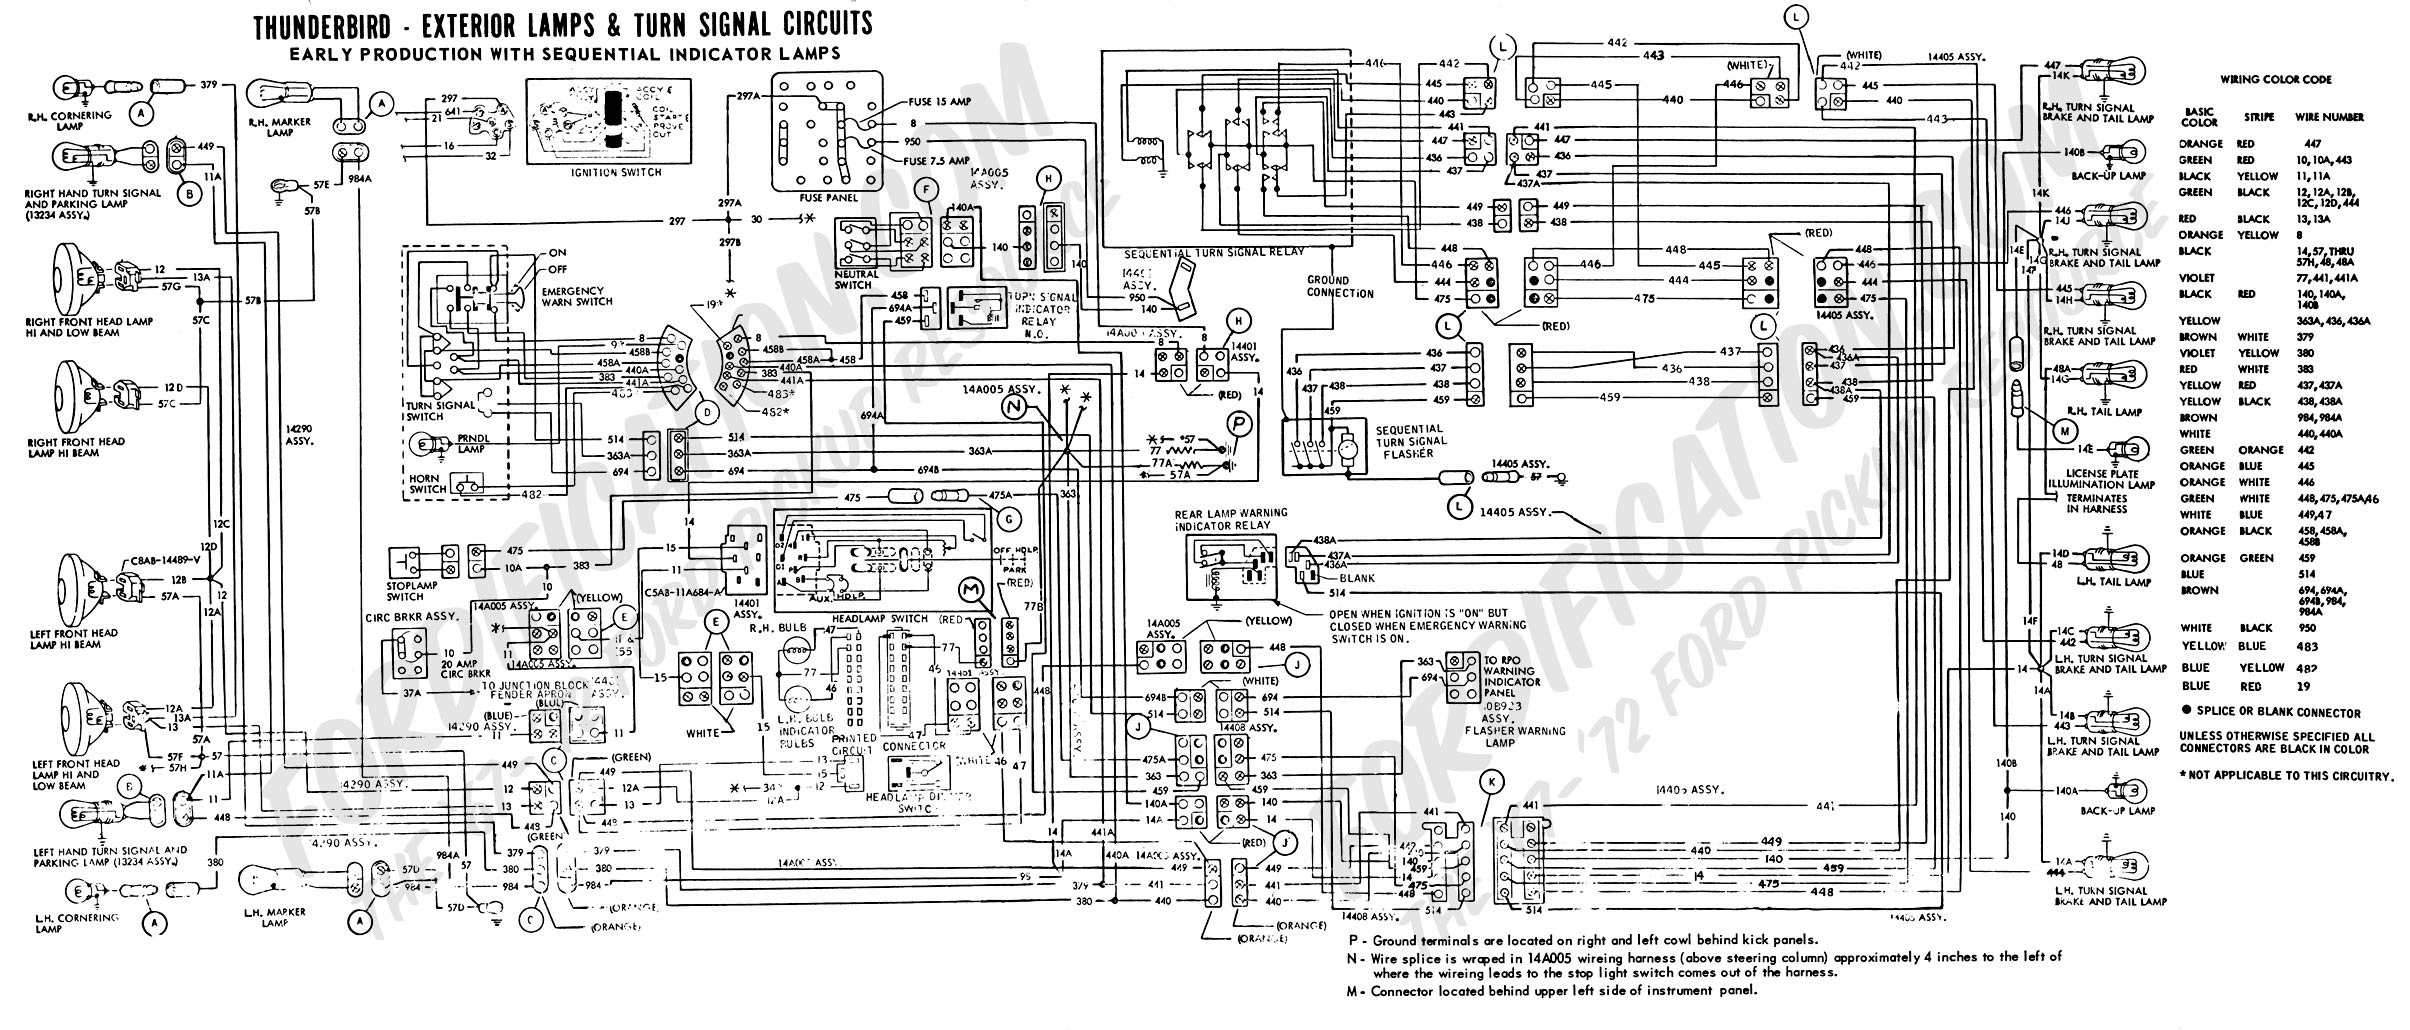 1967 Thunderbird Turn Signal Diagram Books Of Wiring Diagrams For 1968 Amc Fordification Com Tsb Database U2022 View Topic Article 1268 Rh